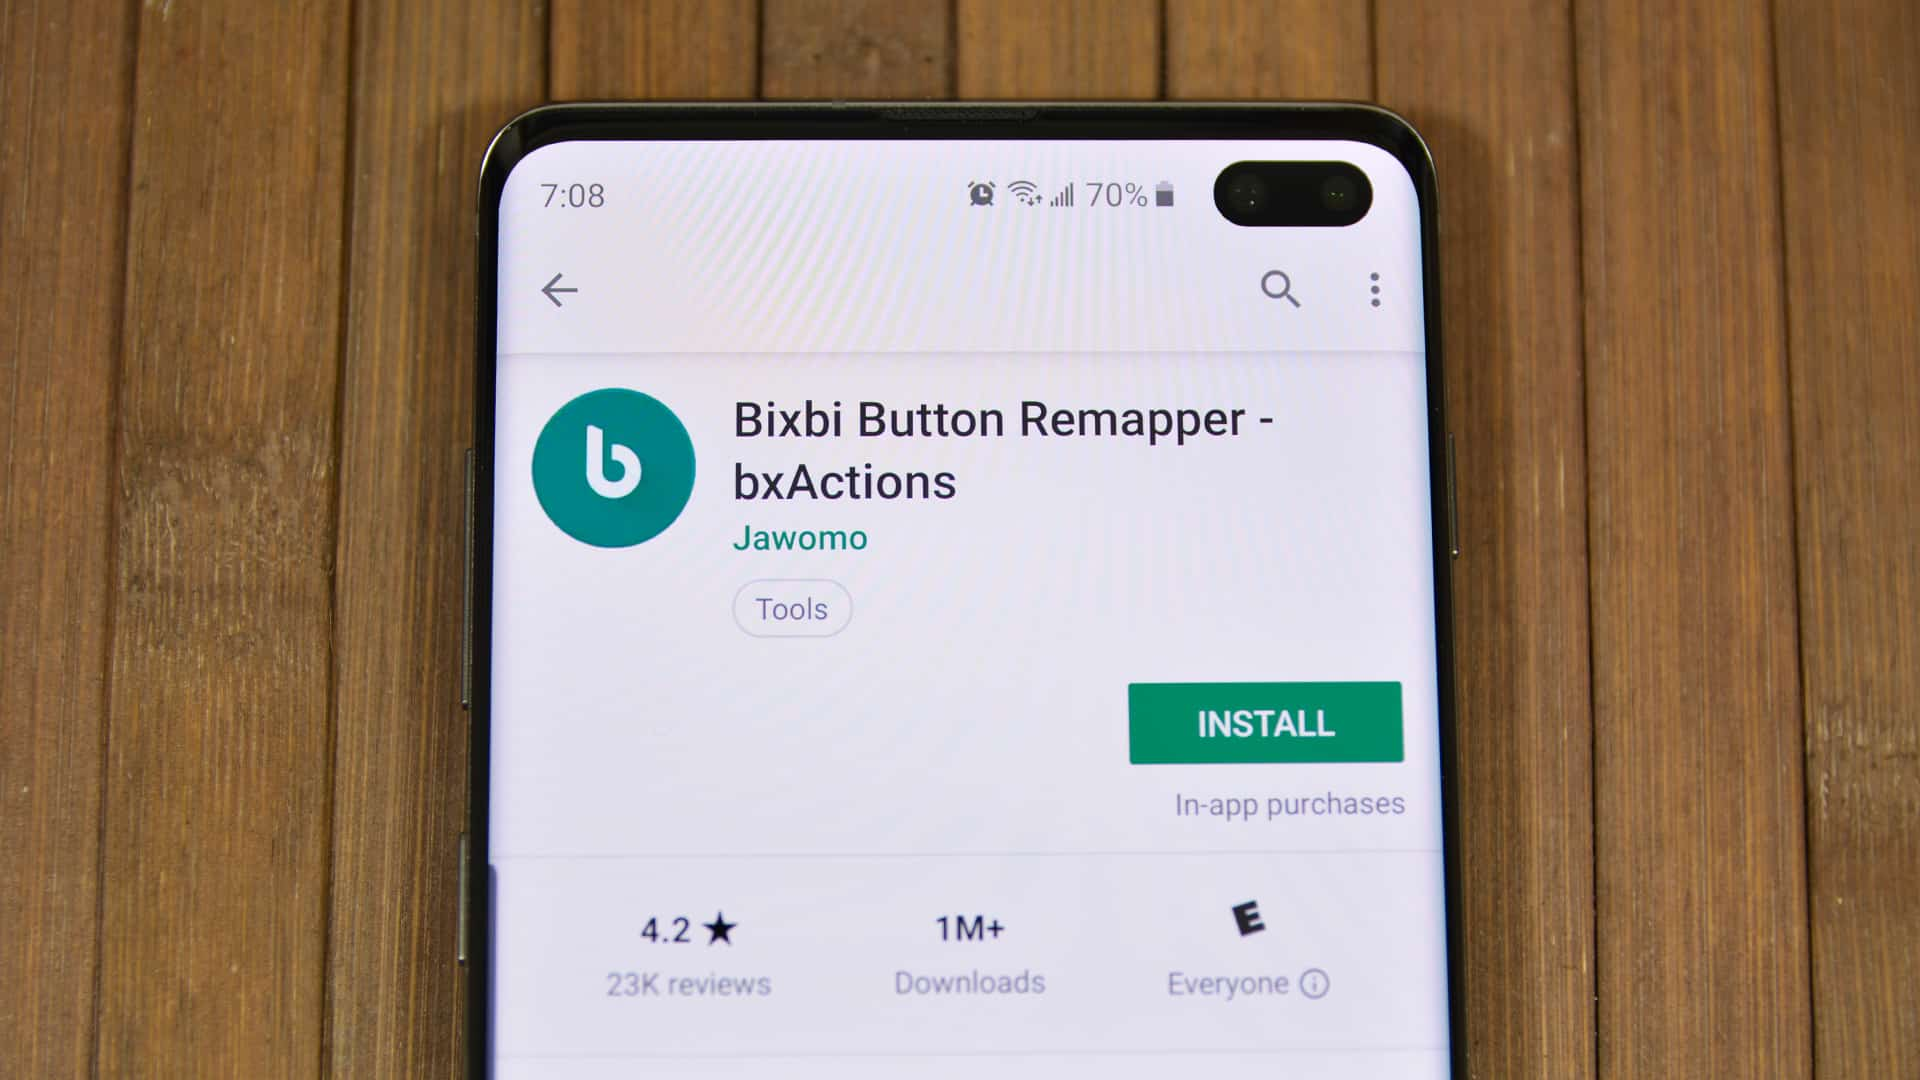 A photo of Bixbi Button Remapper app from the Google Play Store